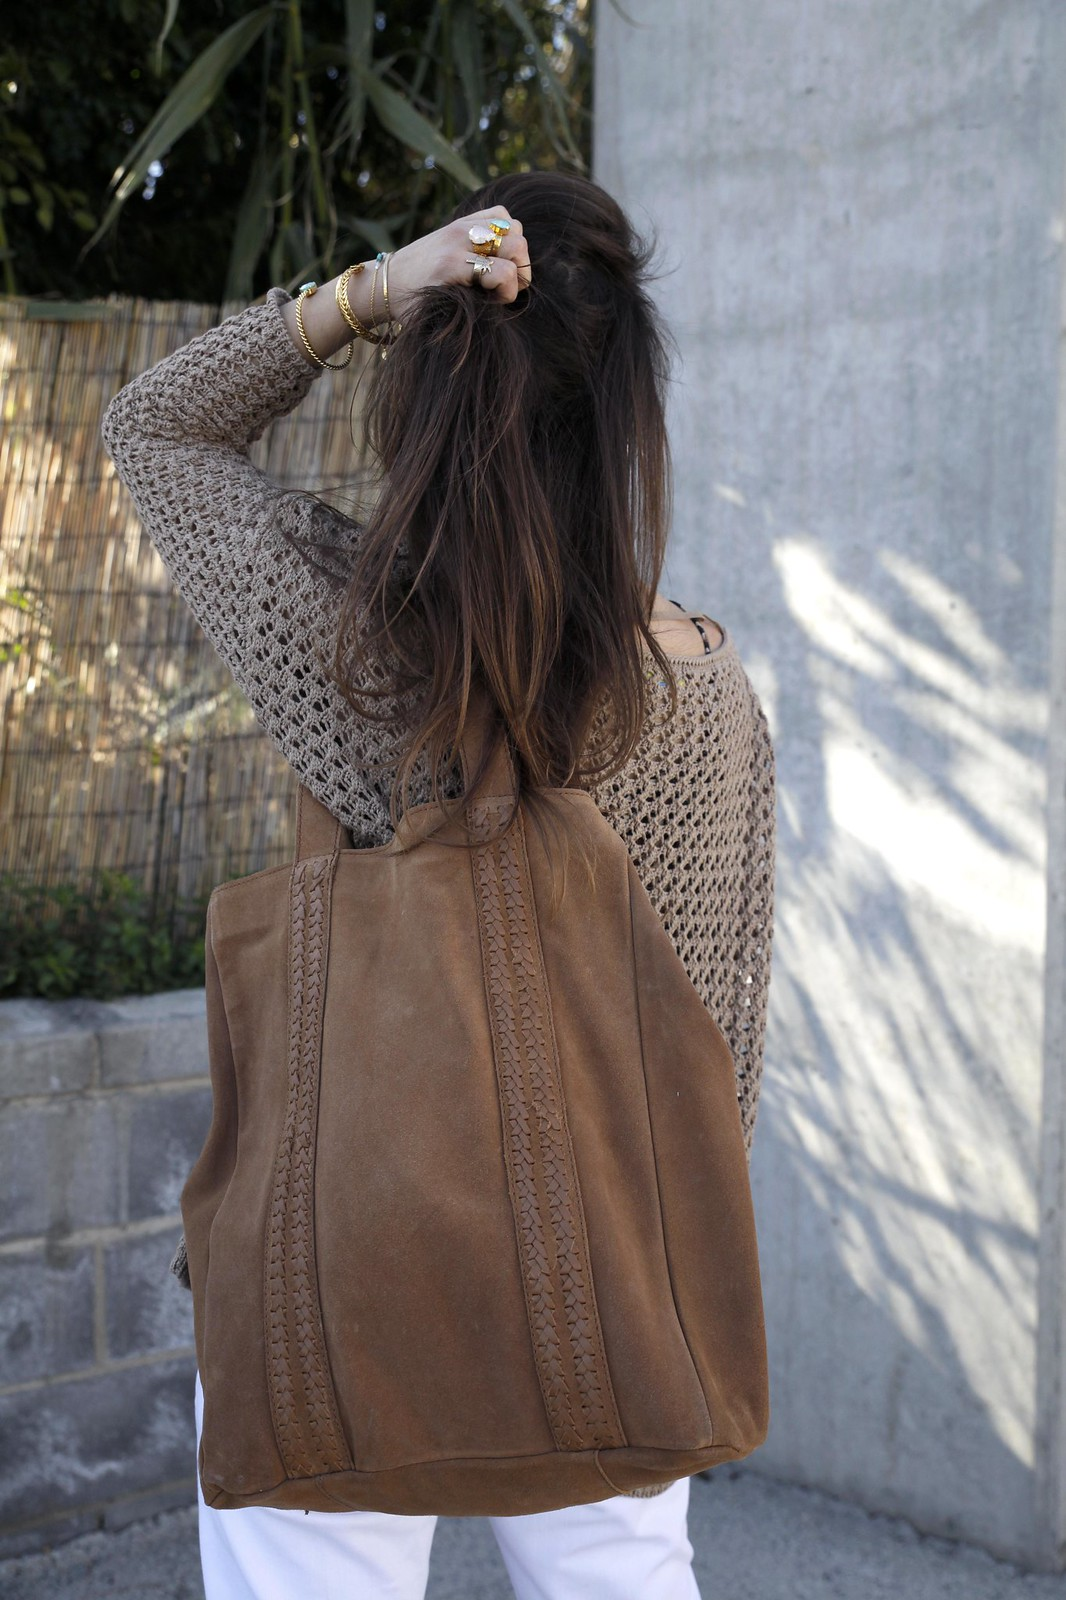 017_SPRING_NEUTRAL_OUTFIT_STREET_STYLE_FASHION_BLOGGER_INFLUENCER_BARCELONA_THEGUESTGIRL